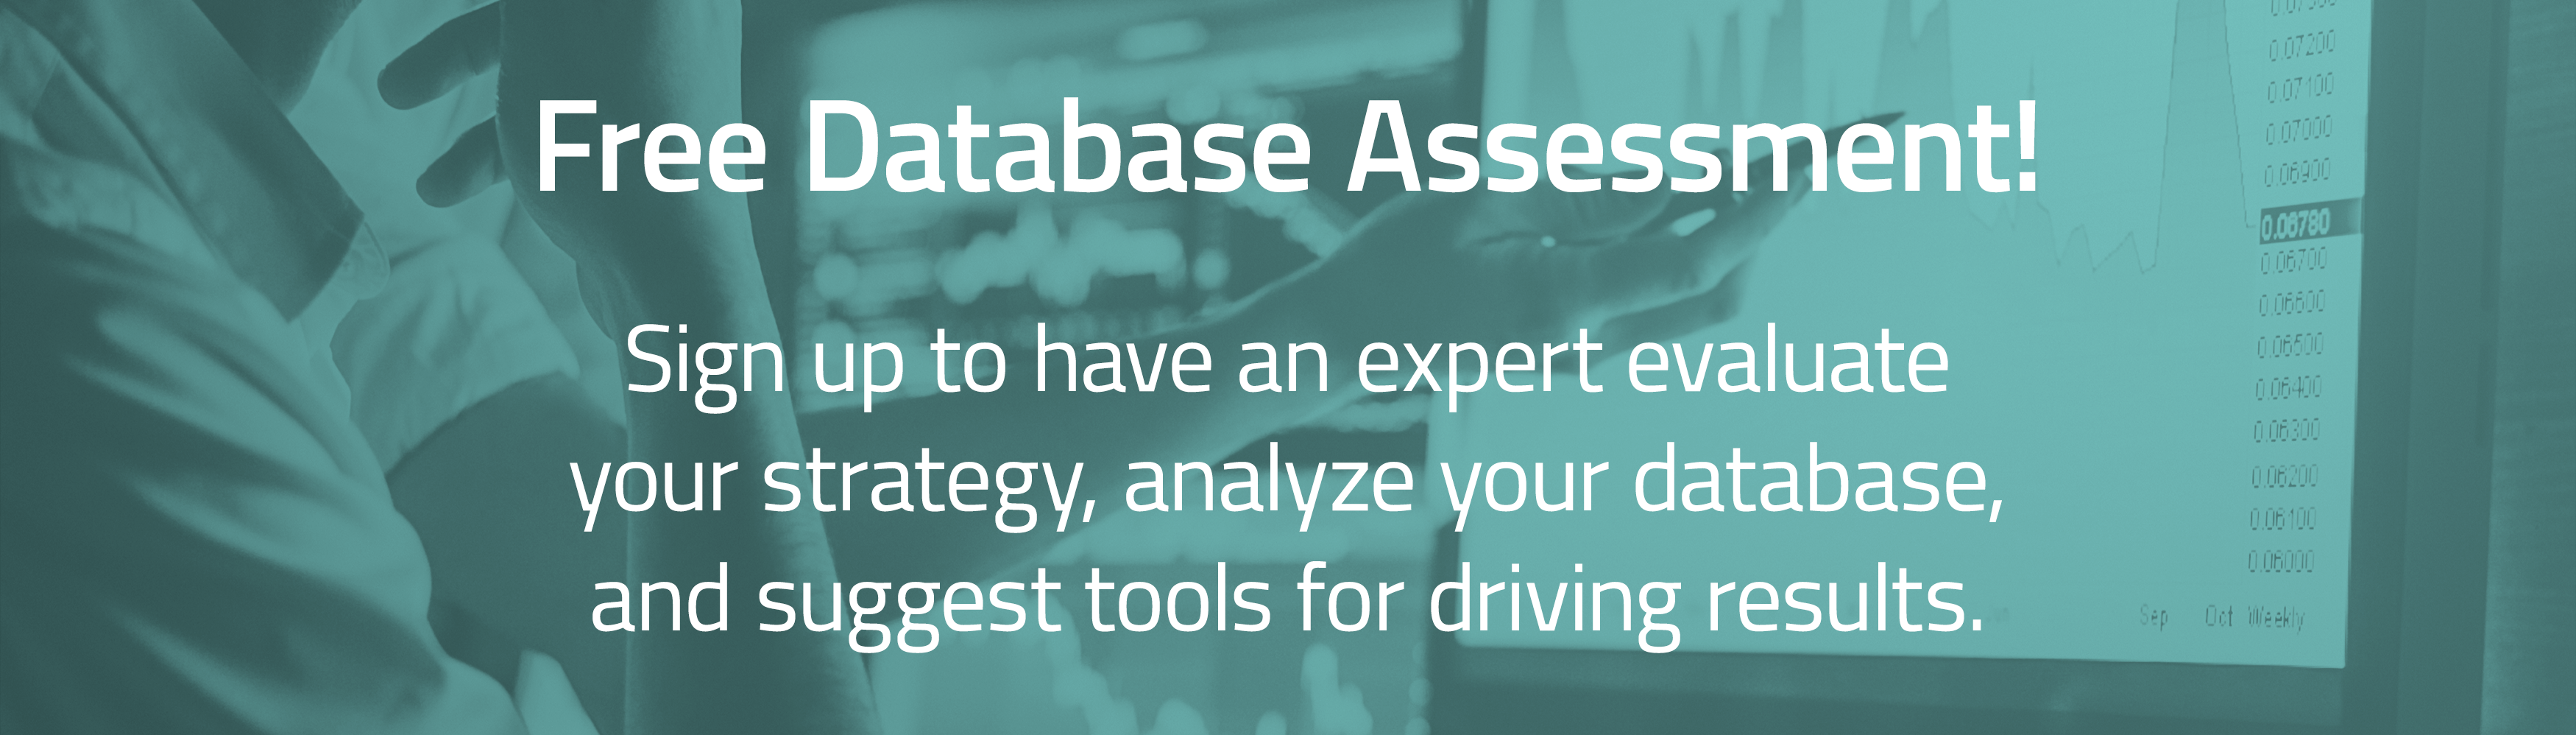 Database Assessment_CTA Form